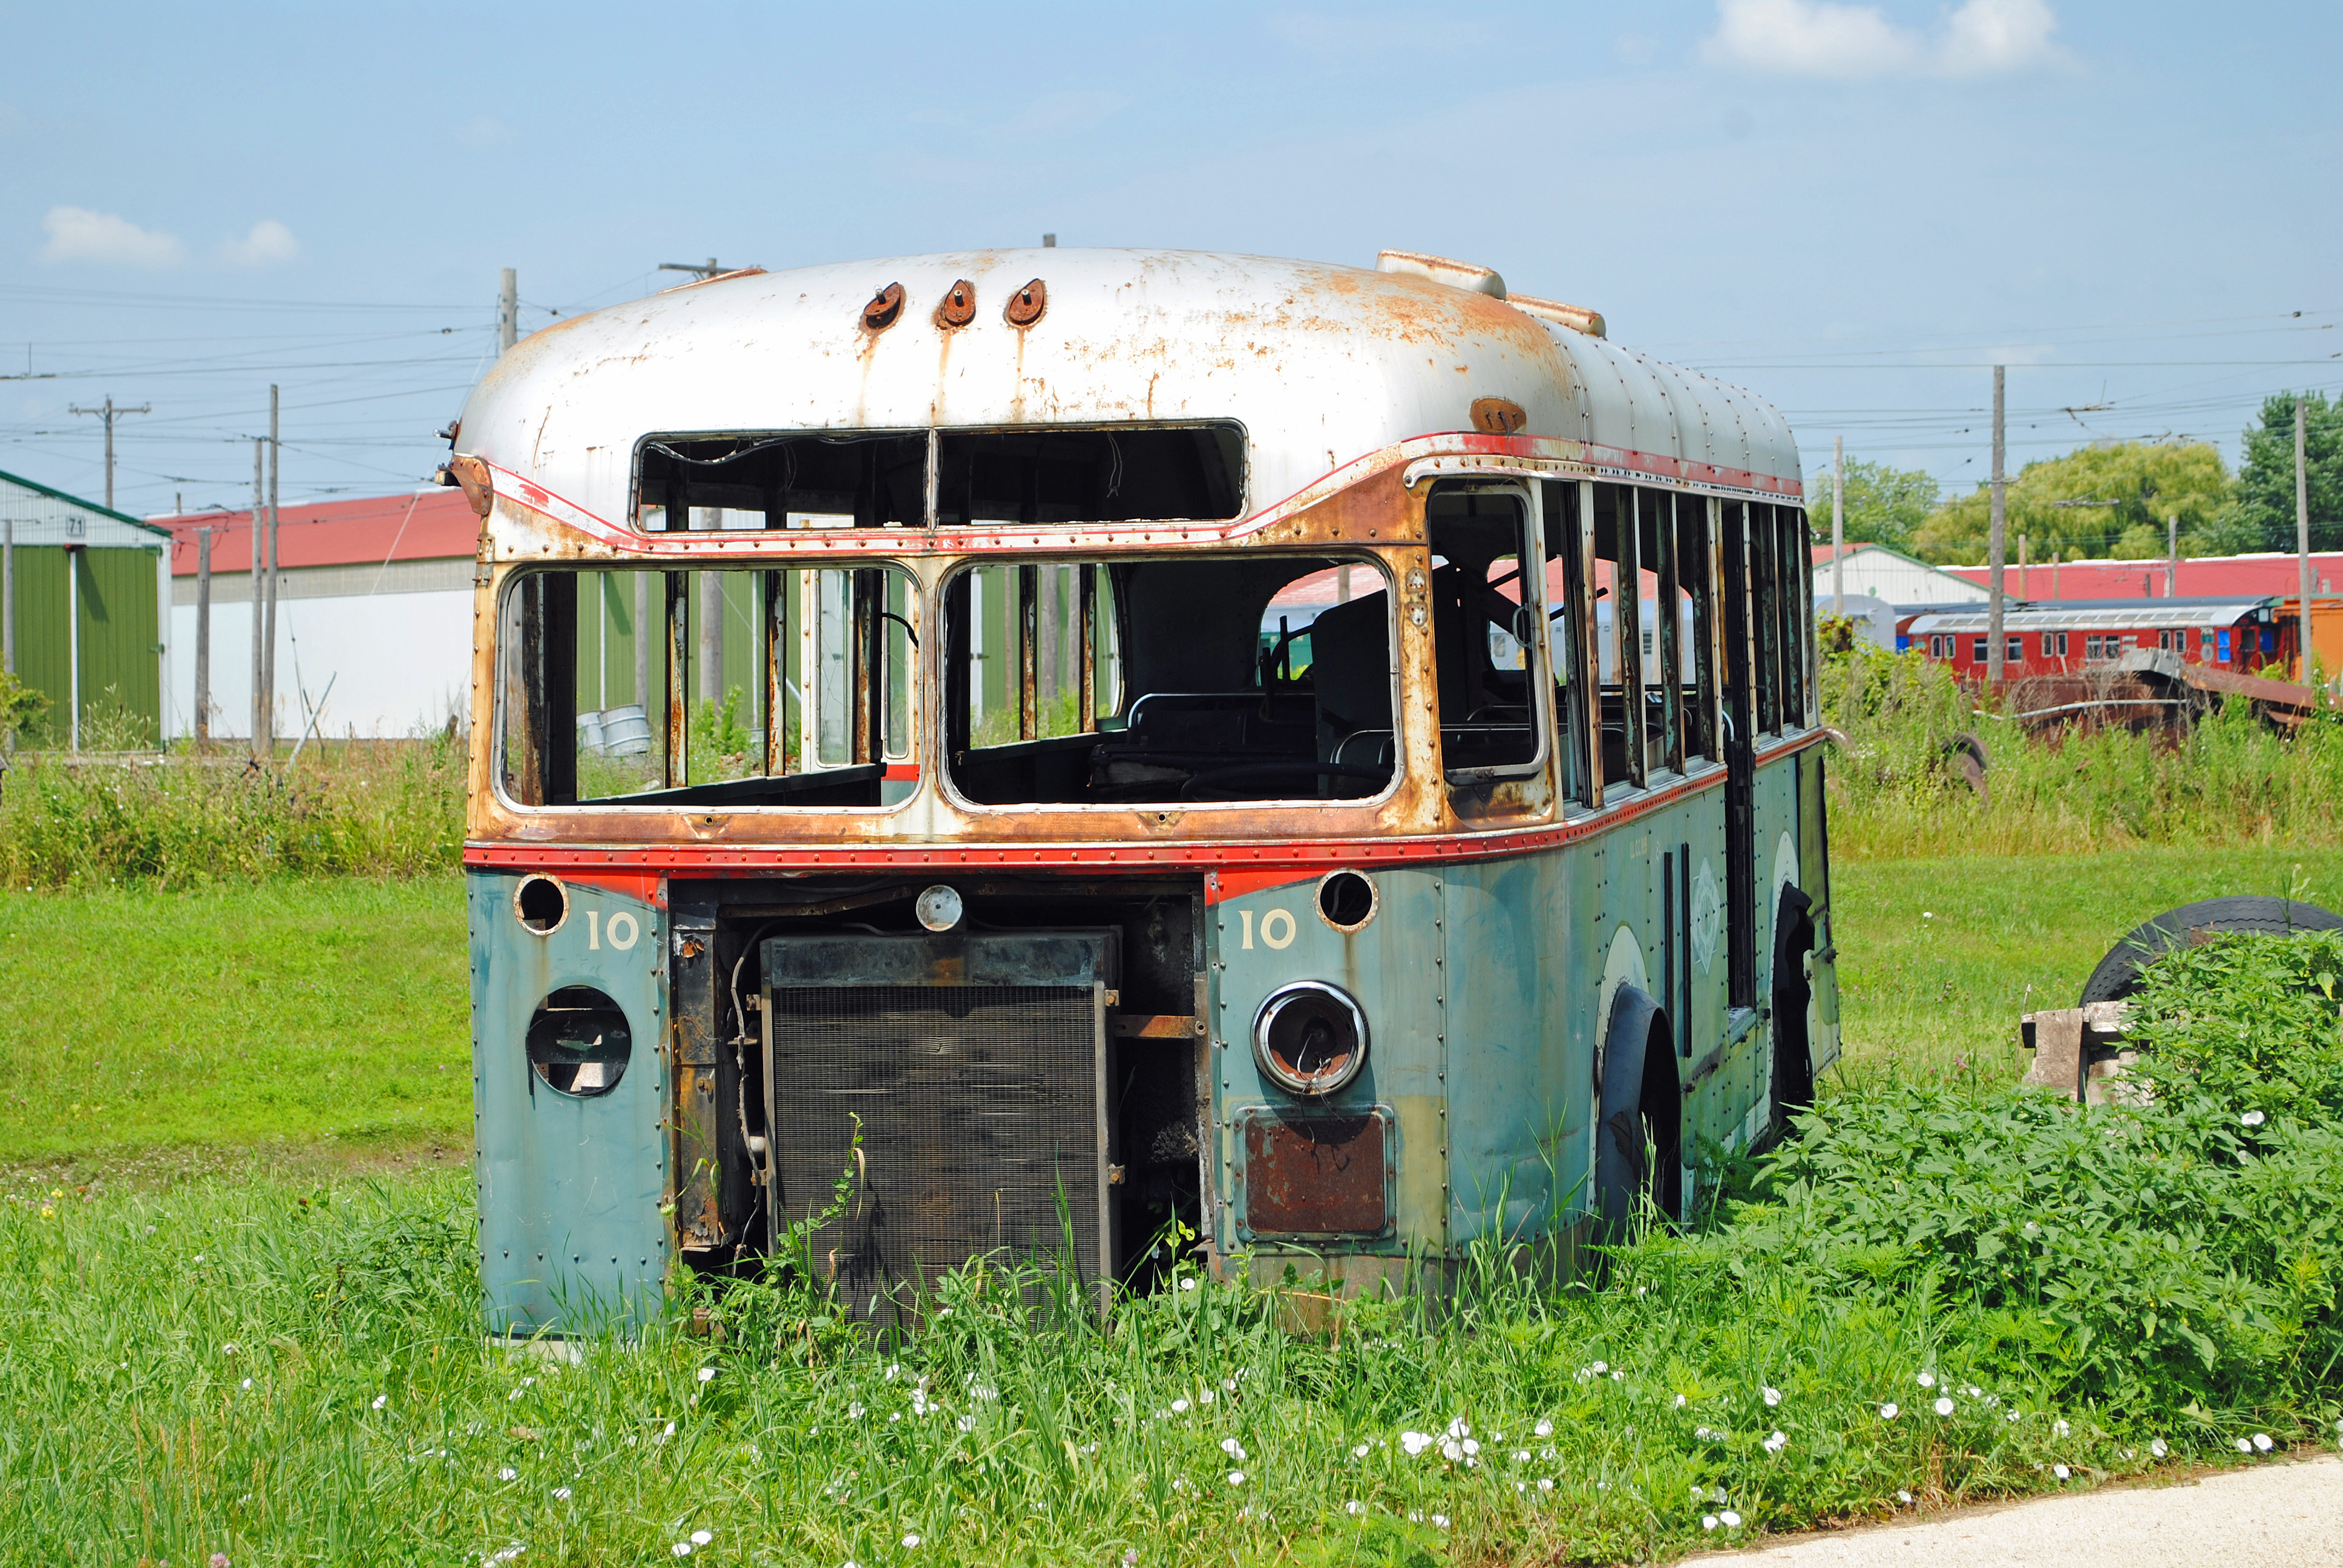 vintage_bus_irm_0102_7_21_13_by_eyepilot13-d6f6y3t.jpg